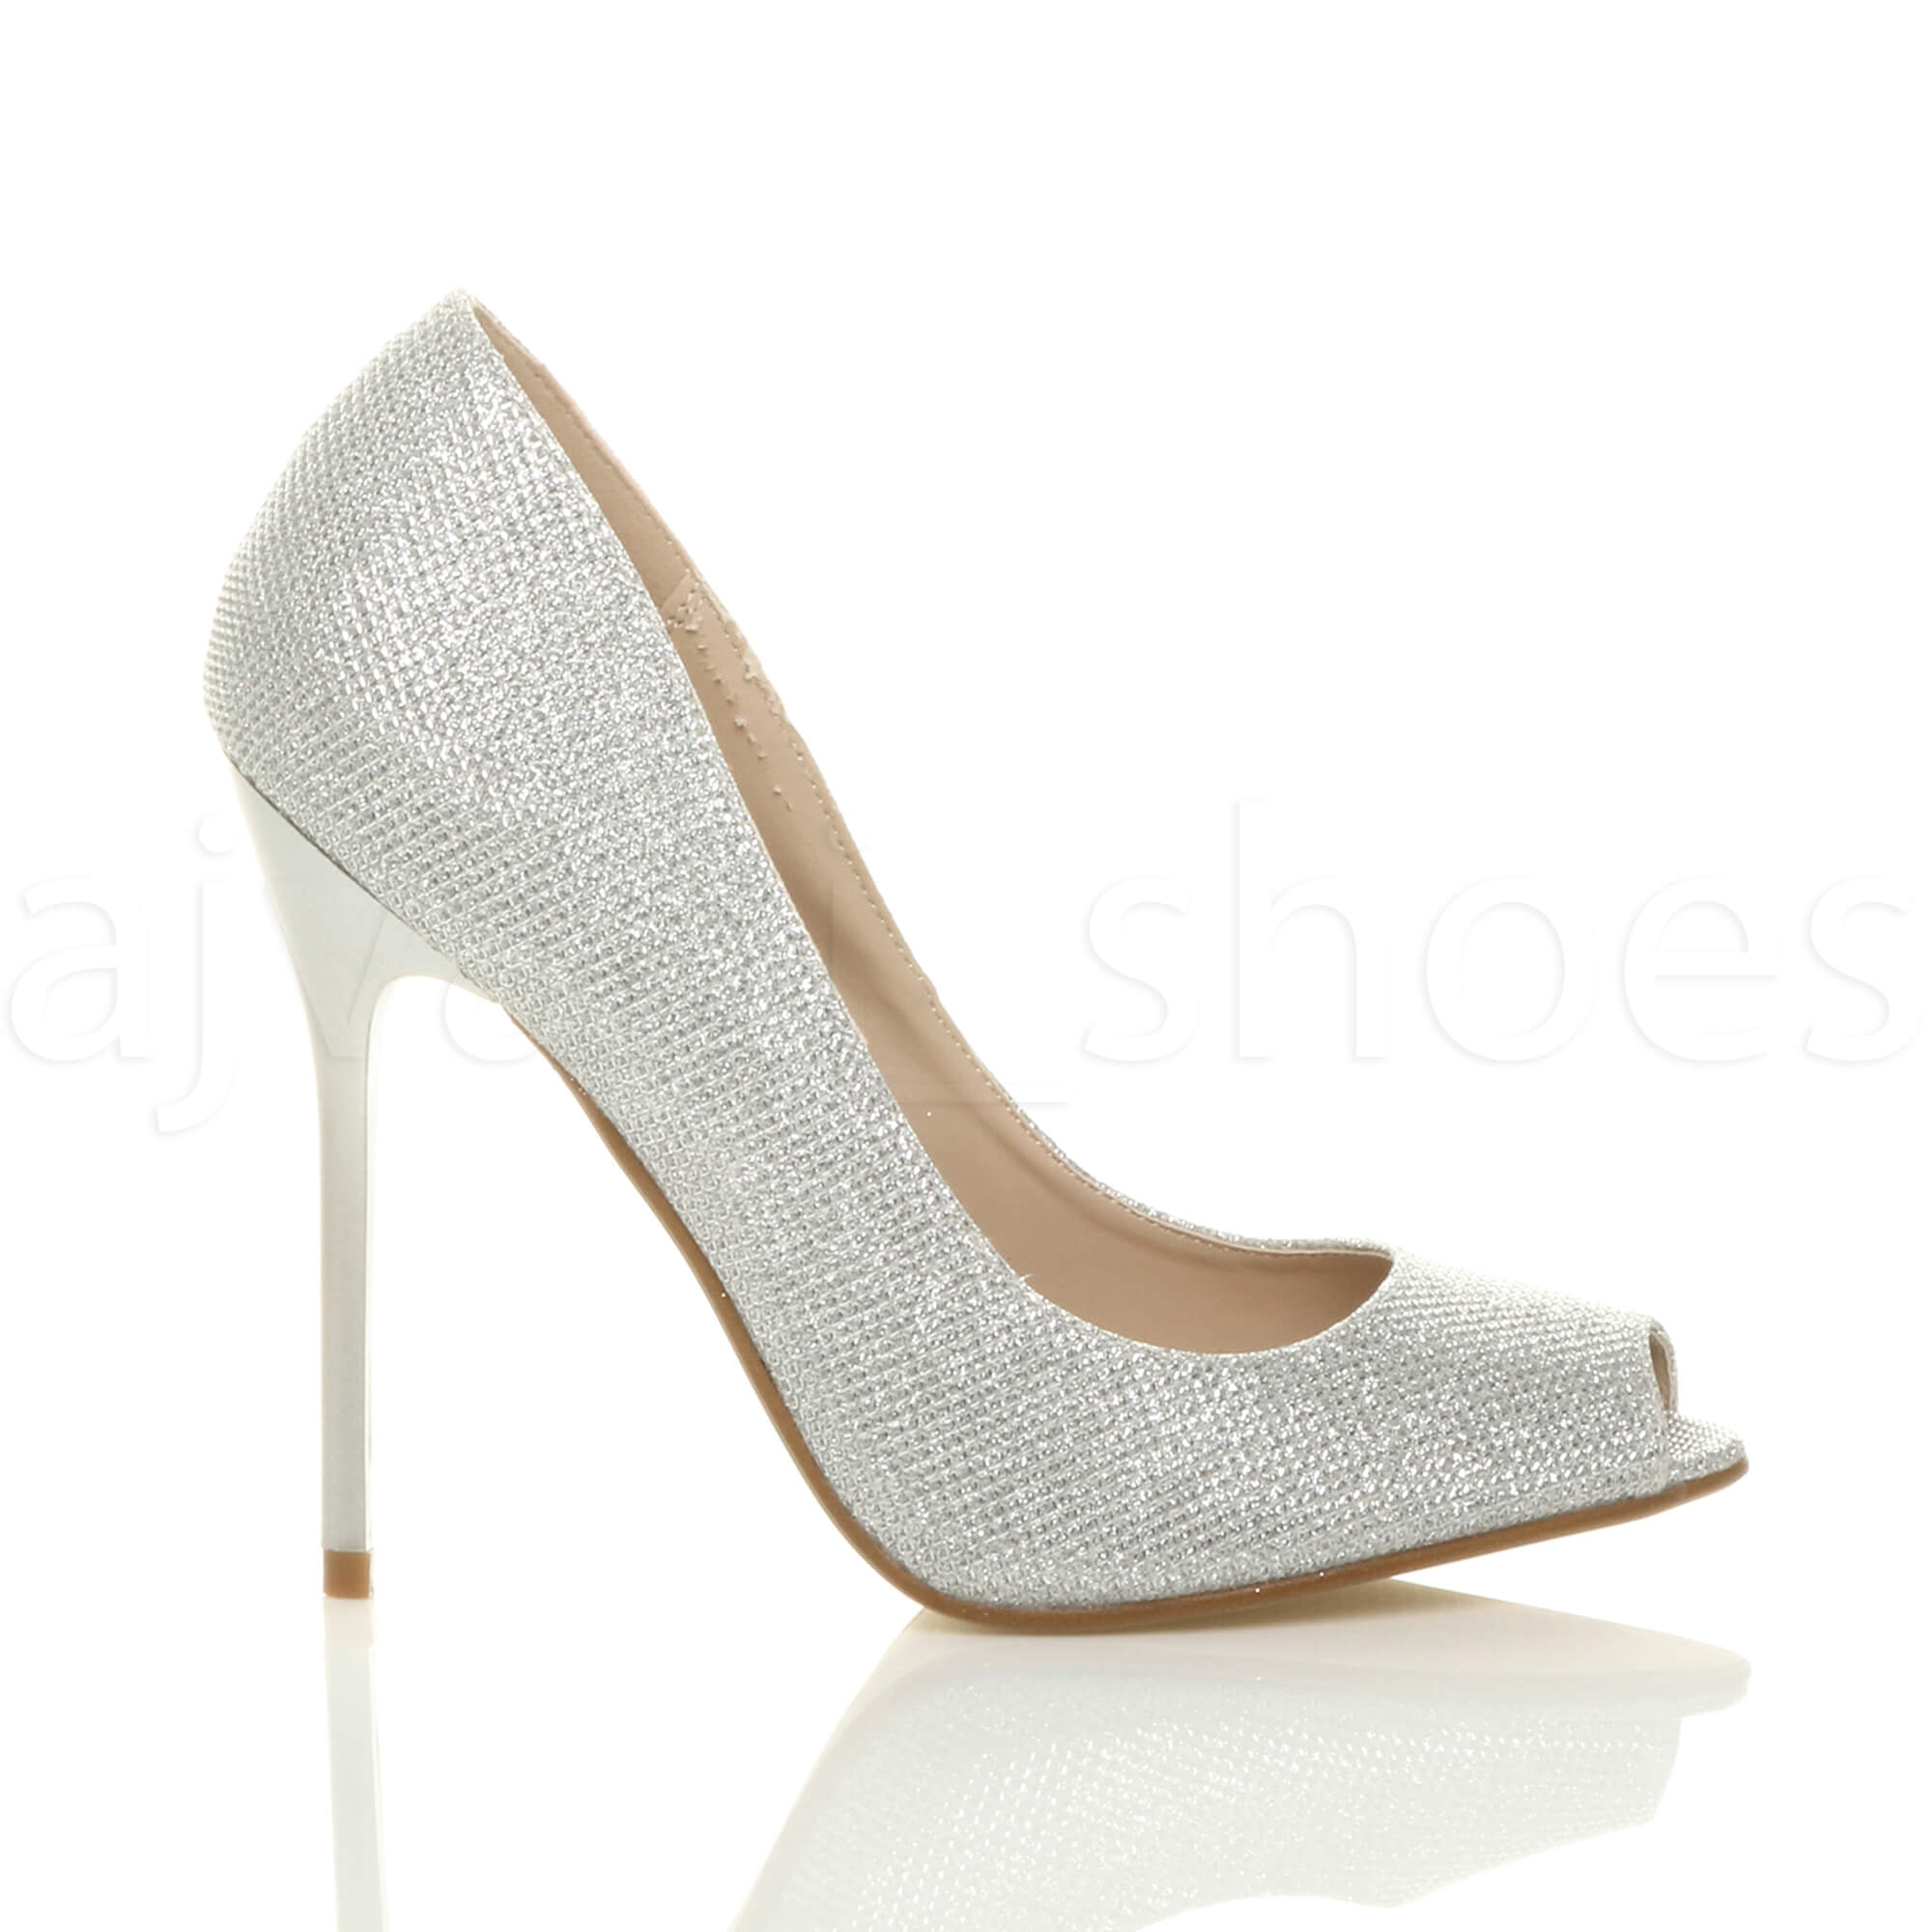 WOMENS-LADIES-HIGH-HEEL-PARTY-PROM-WORK-PUMPS-PEEP-TOE-COURT-SHOES-SANDALS-SIZE